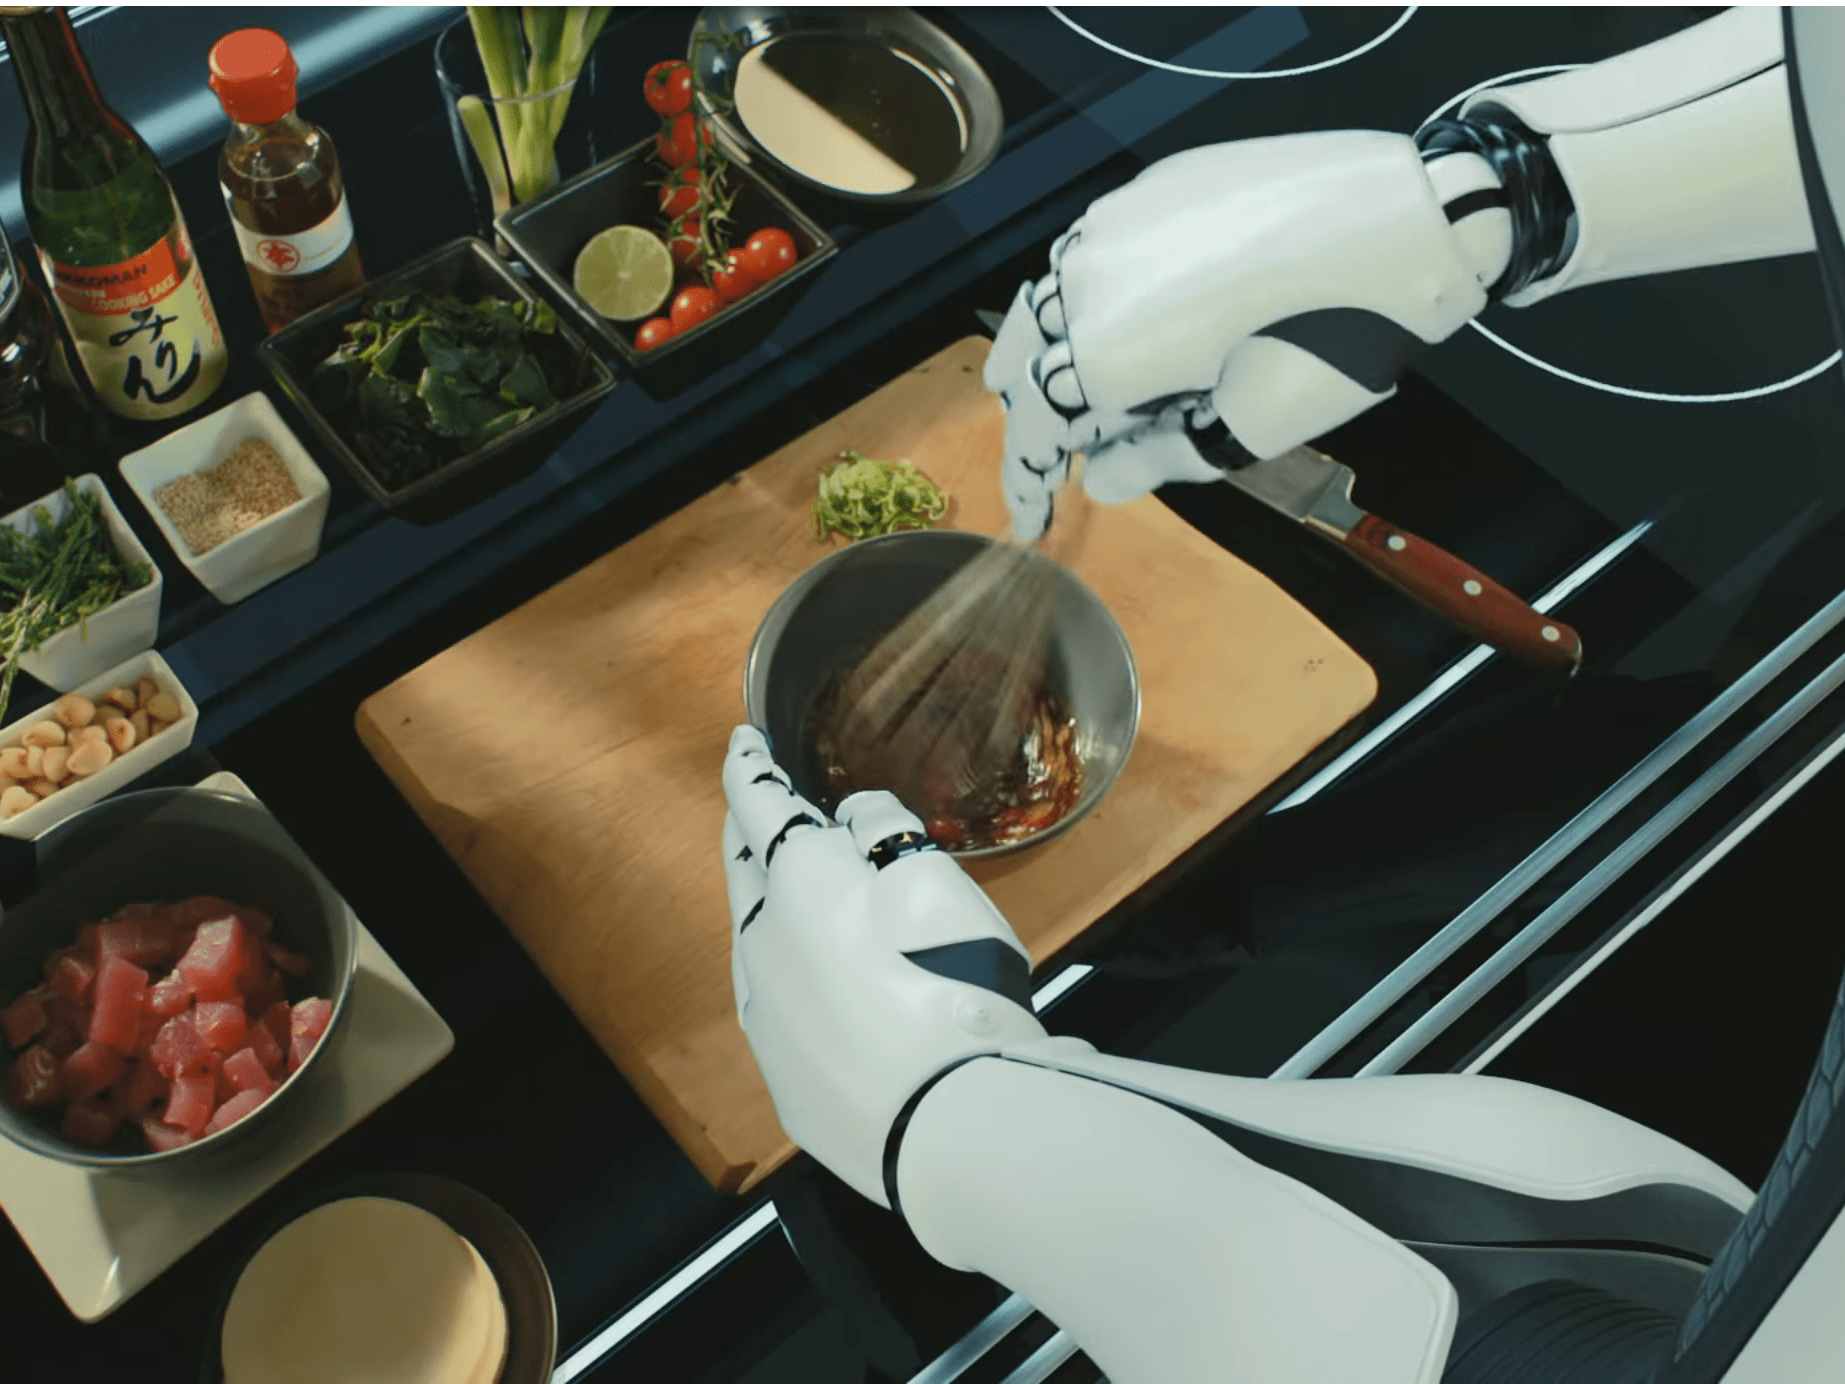 Küche Der Zukunft Roboter Moley To Present The World 39s First Robot Kitchen In 2017